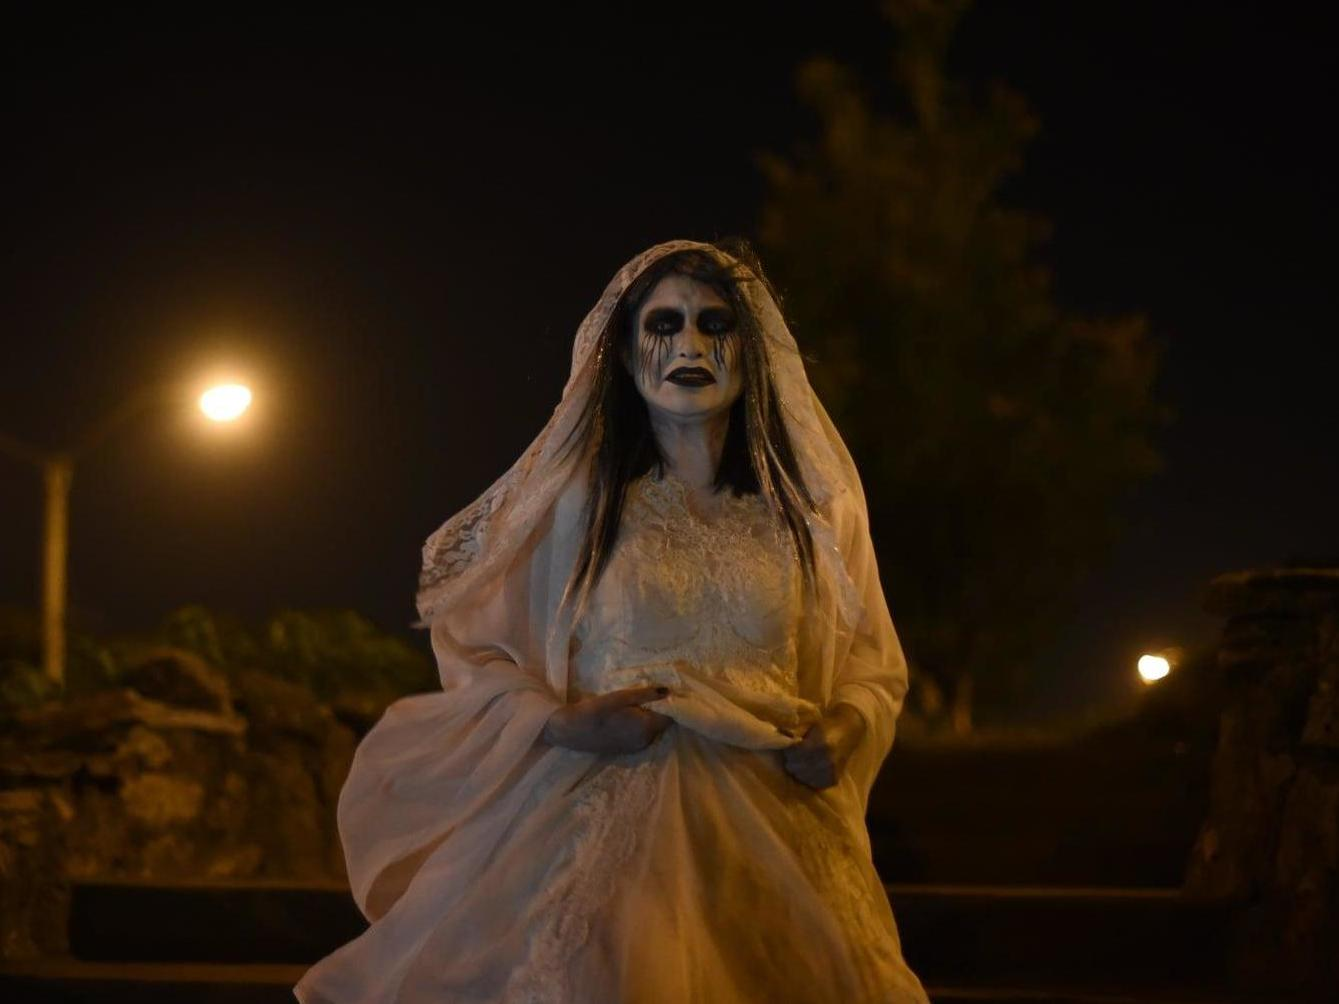 The Curse of La Llorona review: An unhinged horror that borrows shamelessly from The Exorcist